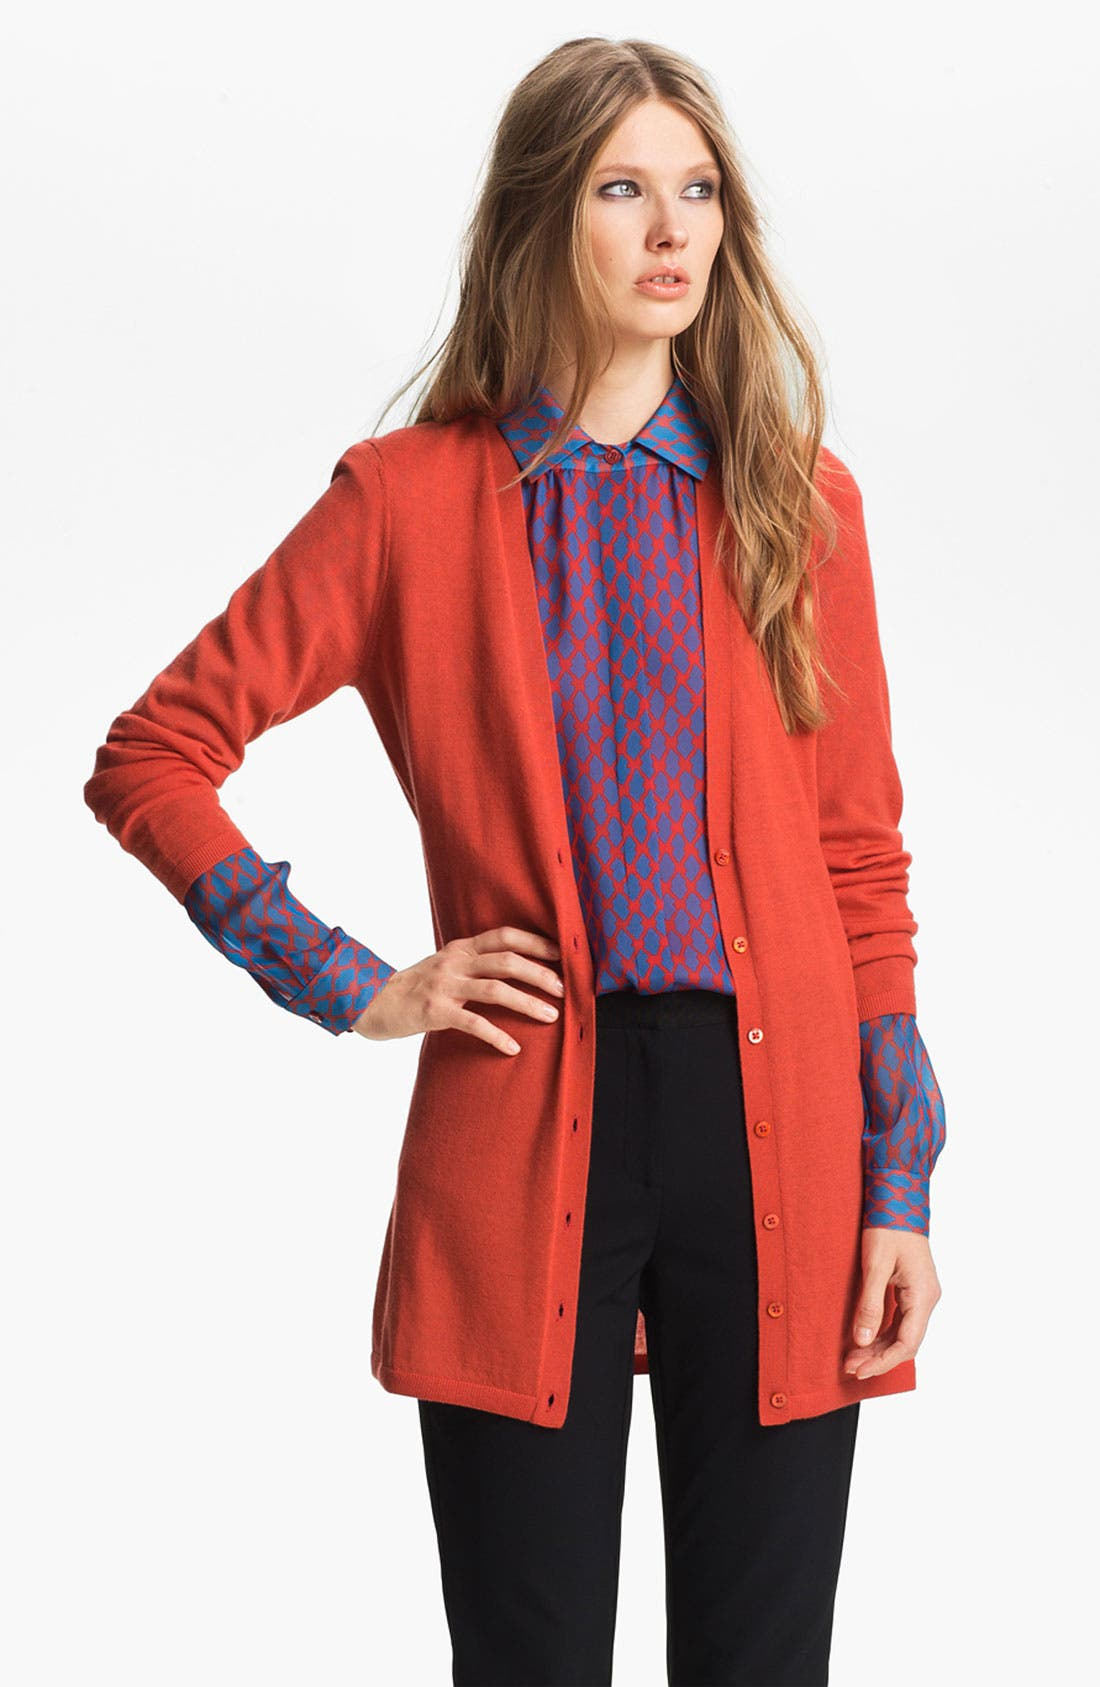 Alternate Image 1 Selected - Miss Wu 'Sofie' Cashmere Cardigan (Nordstrom Exclusive)